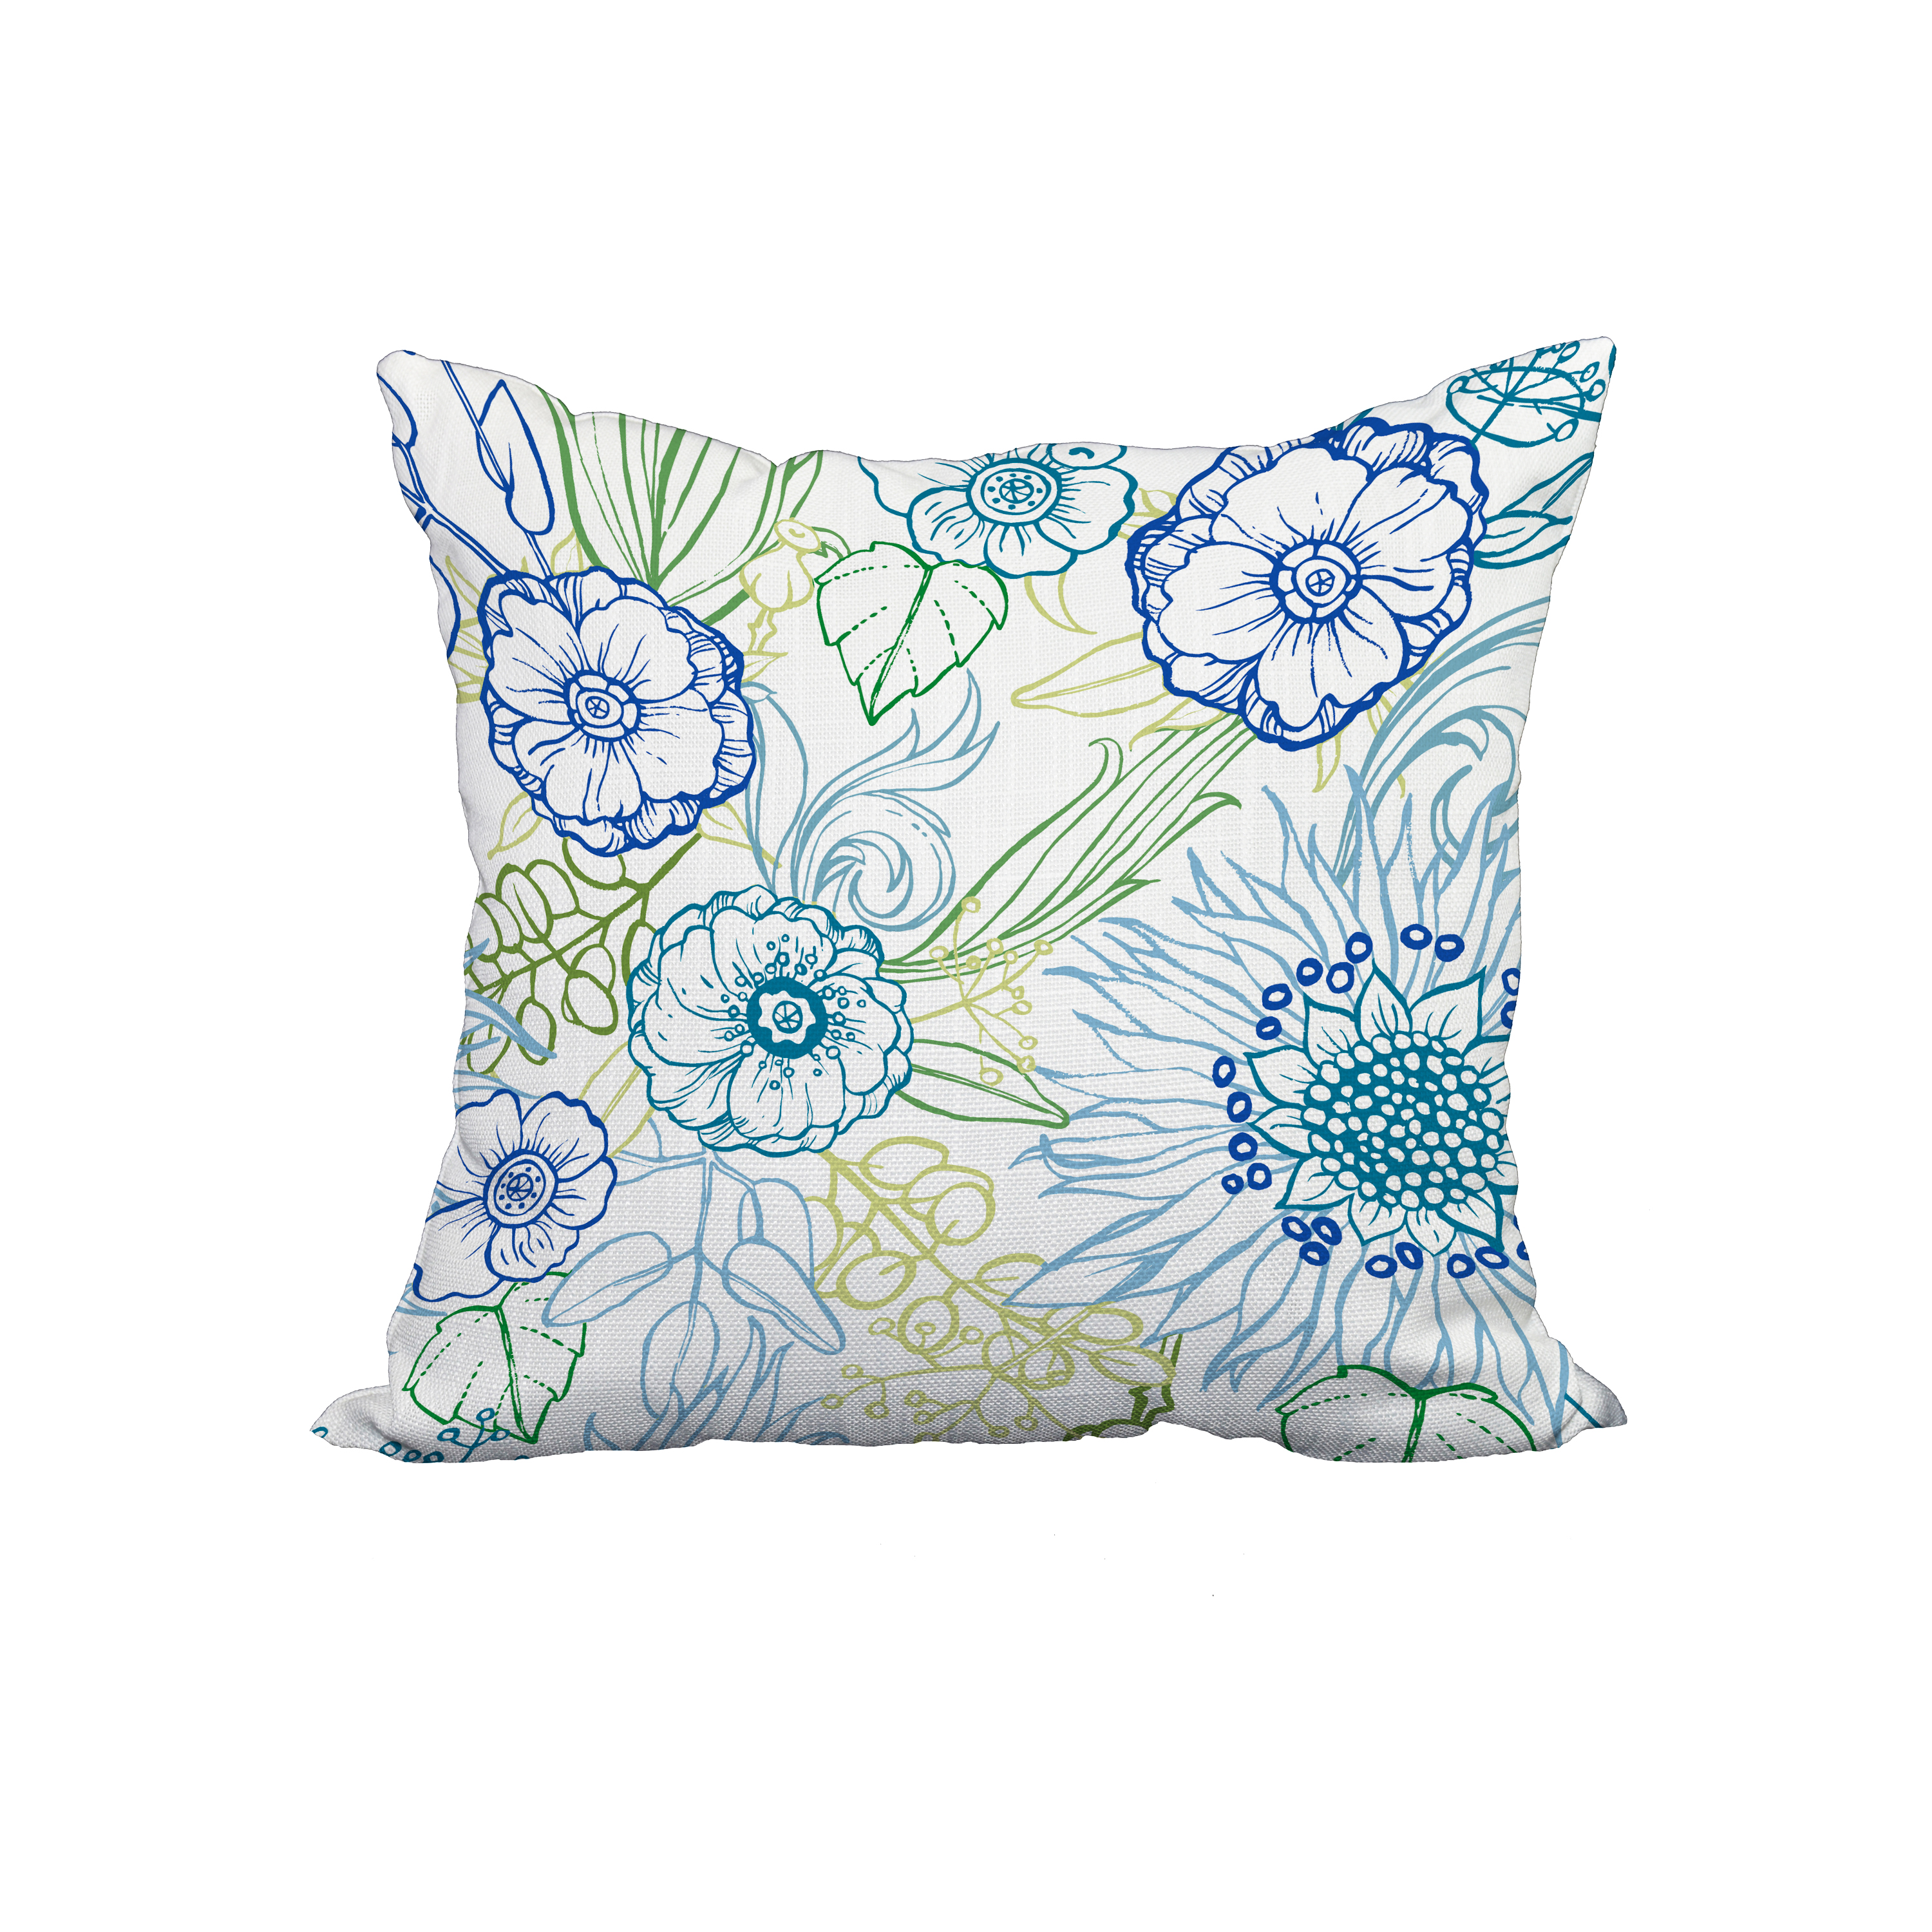 18 x 18 Inch Zentangle 4 Color Blue Floral Print Decorative Polyester Throw Pillow with Linen Texture